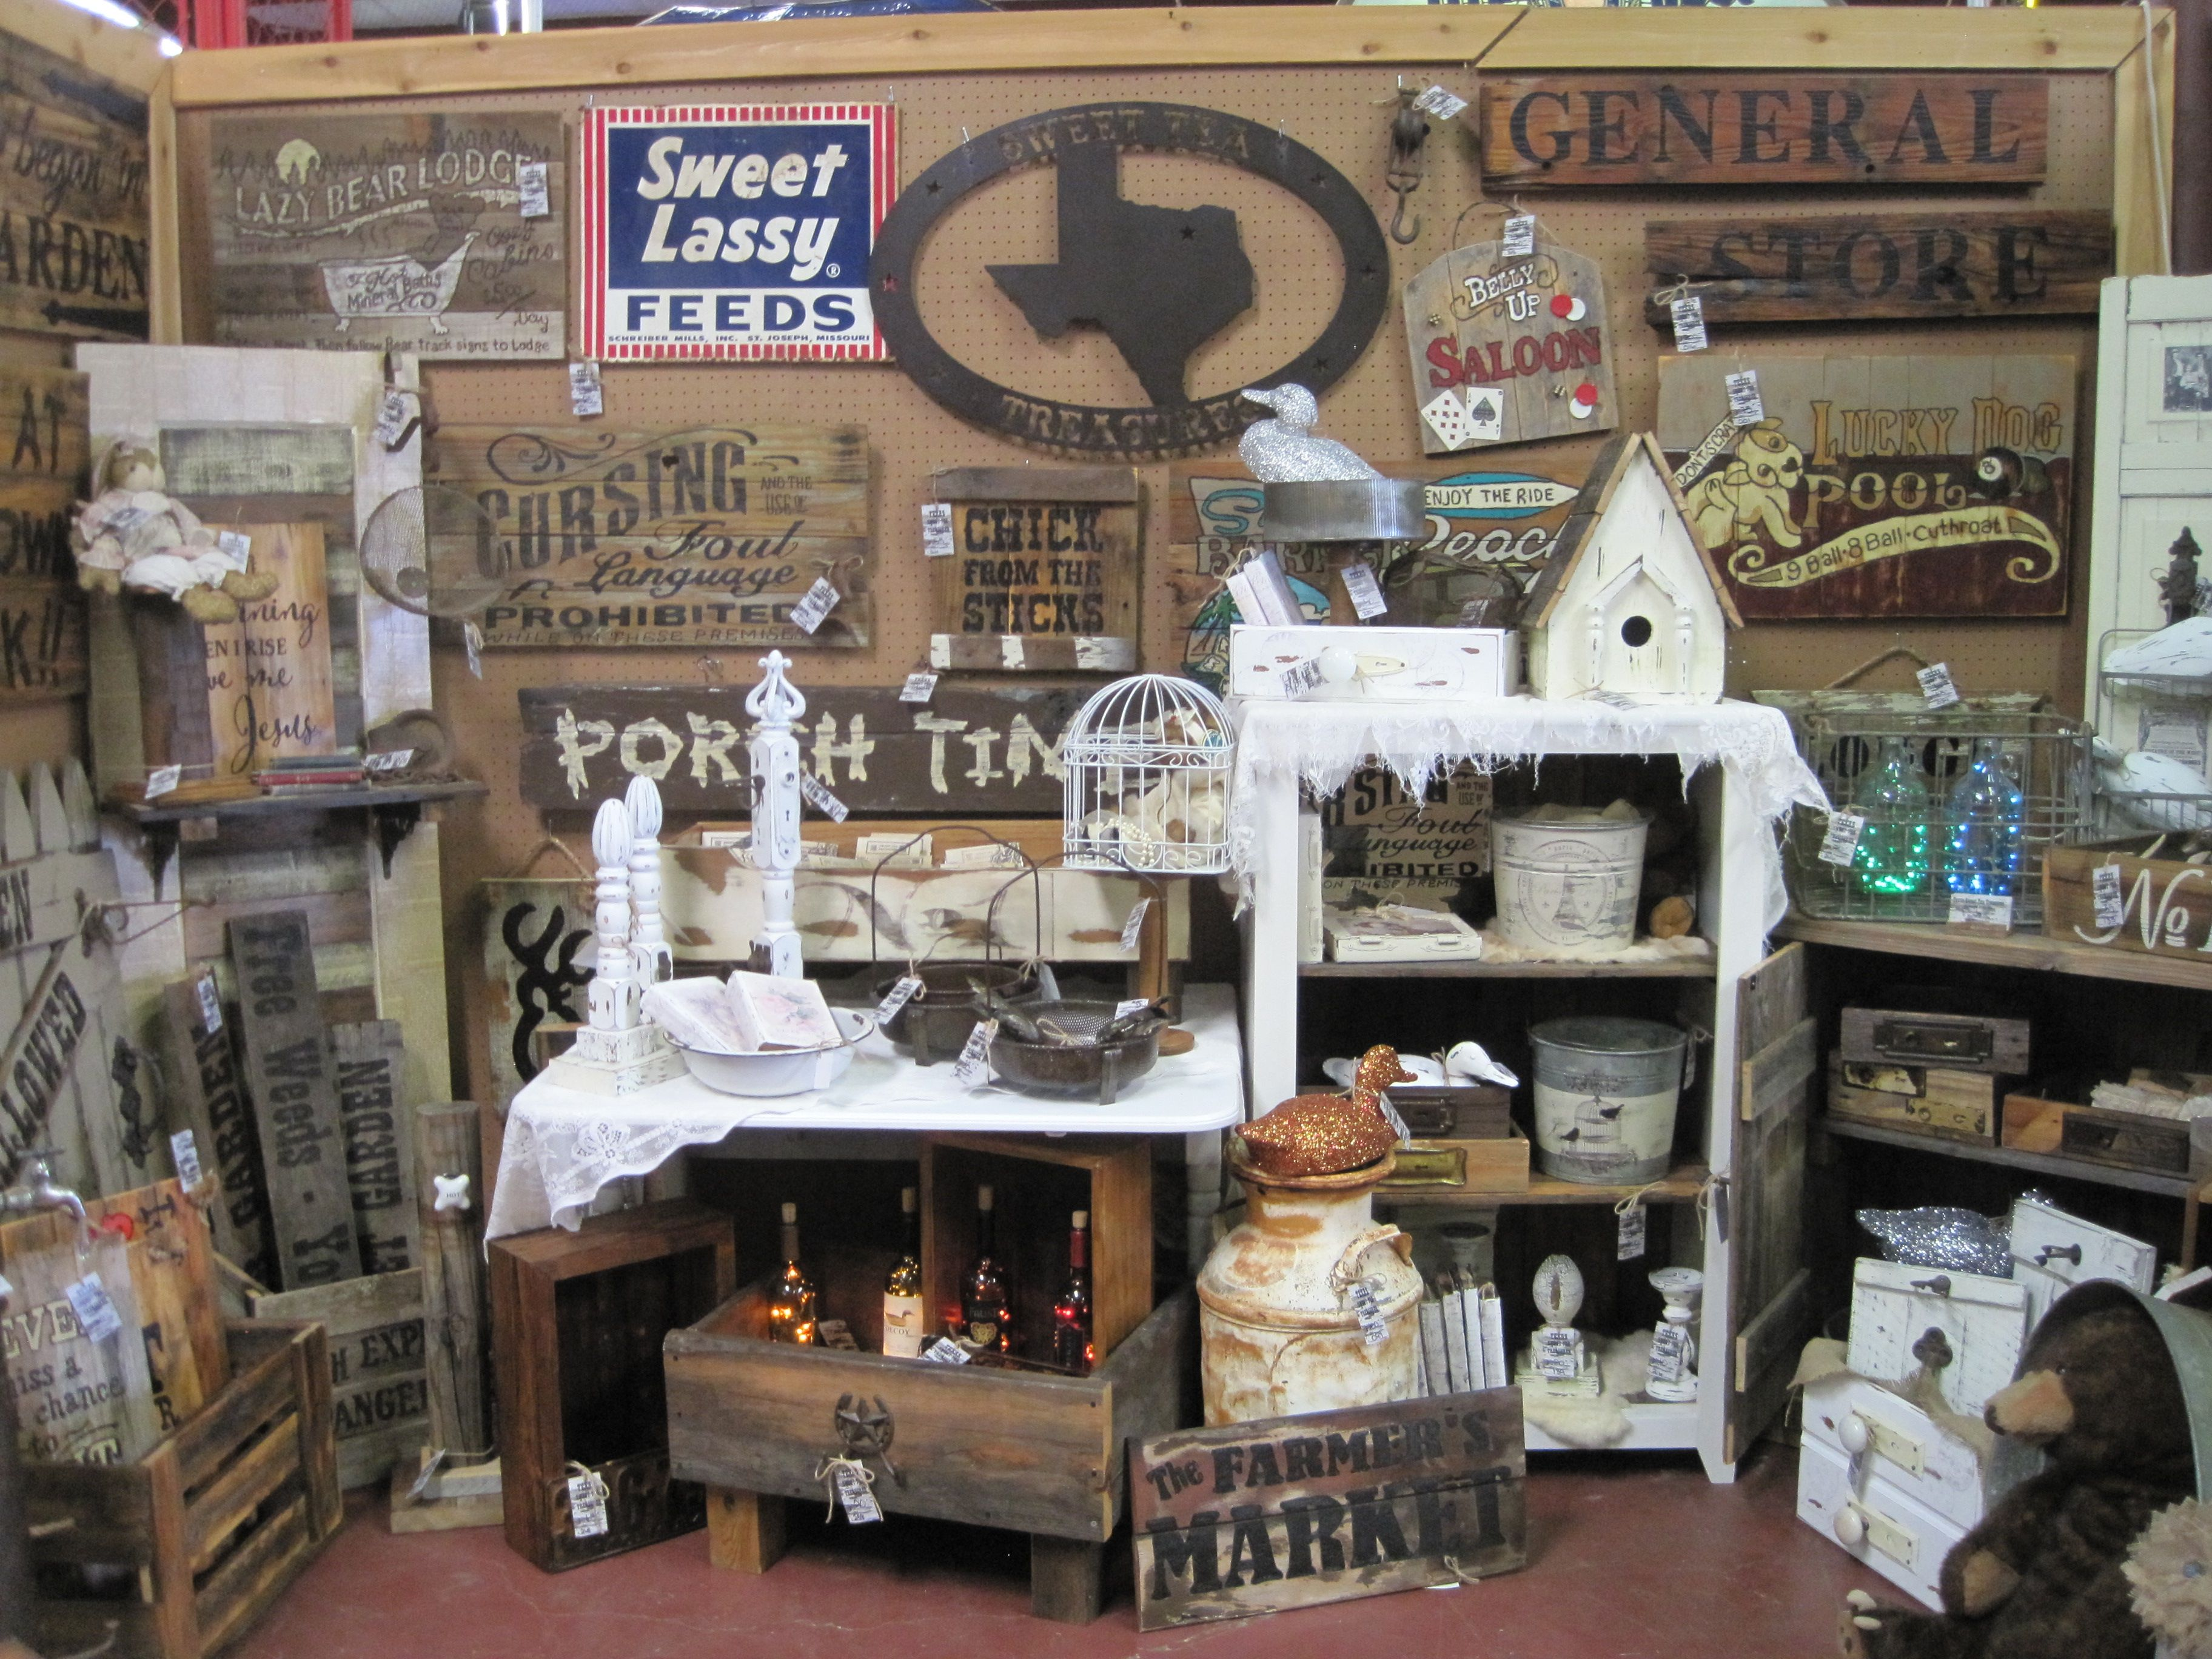 Added more to our booth at Random-Finds in Forney Texas!!